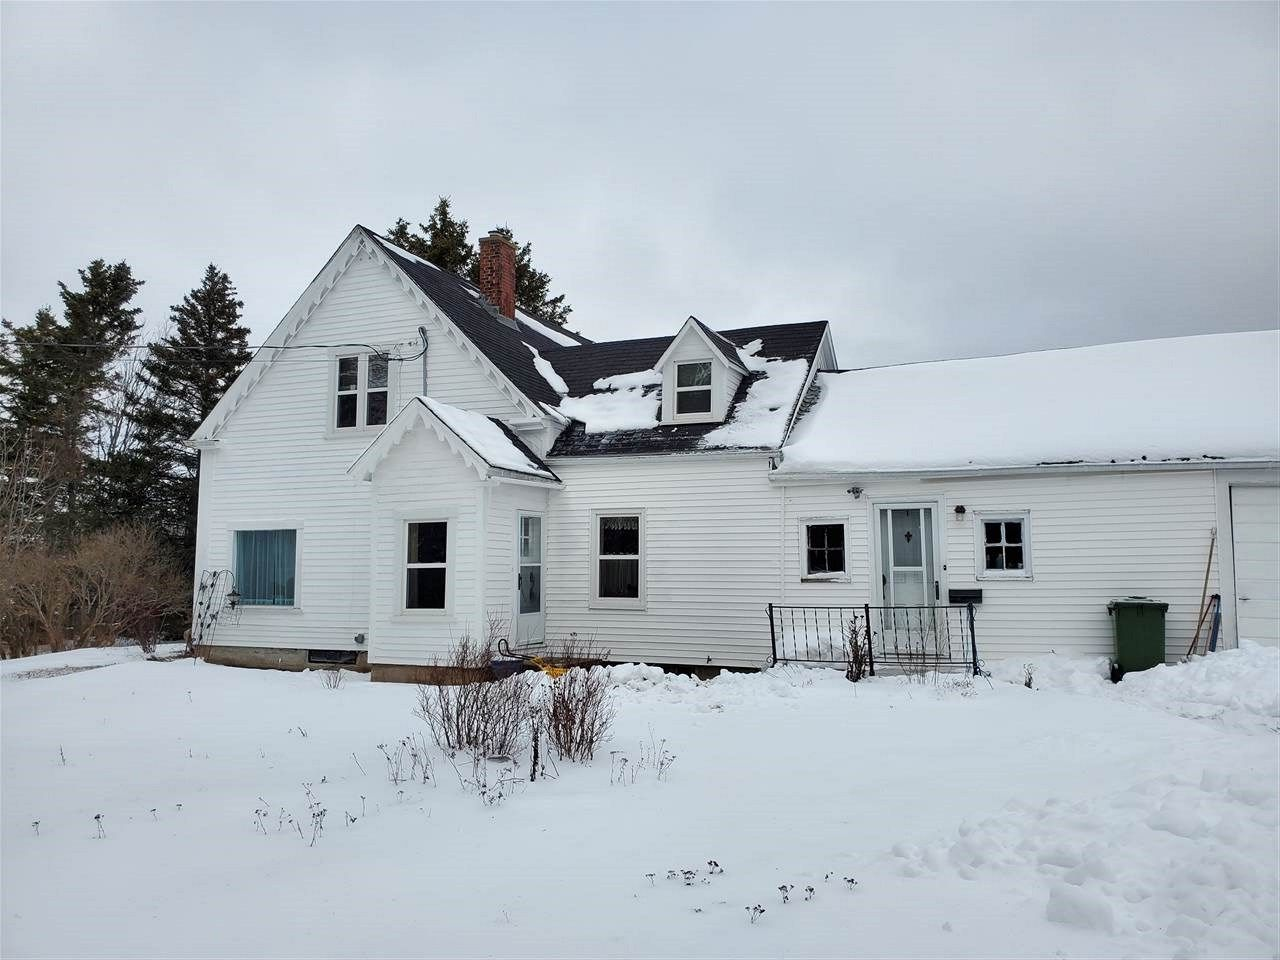 Main Photo: 1486 Fort Lawrence Road in Fort Lawrence: 101-Amherst,Brookdale,Warren Residential for sale (Northern Region)  : MLS®# 202100277